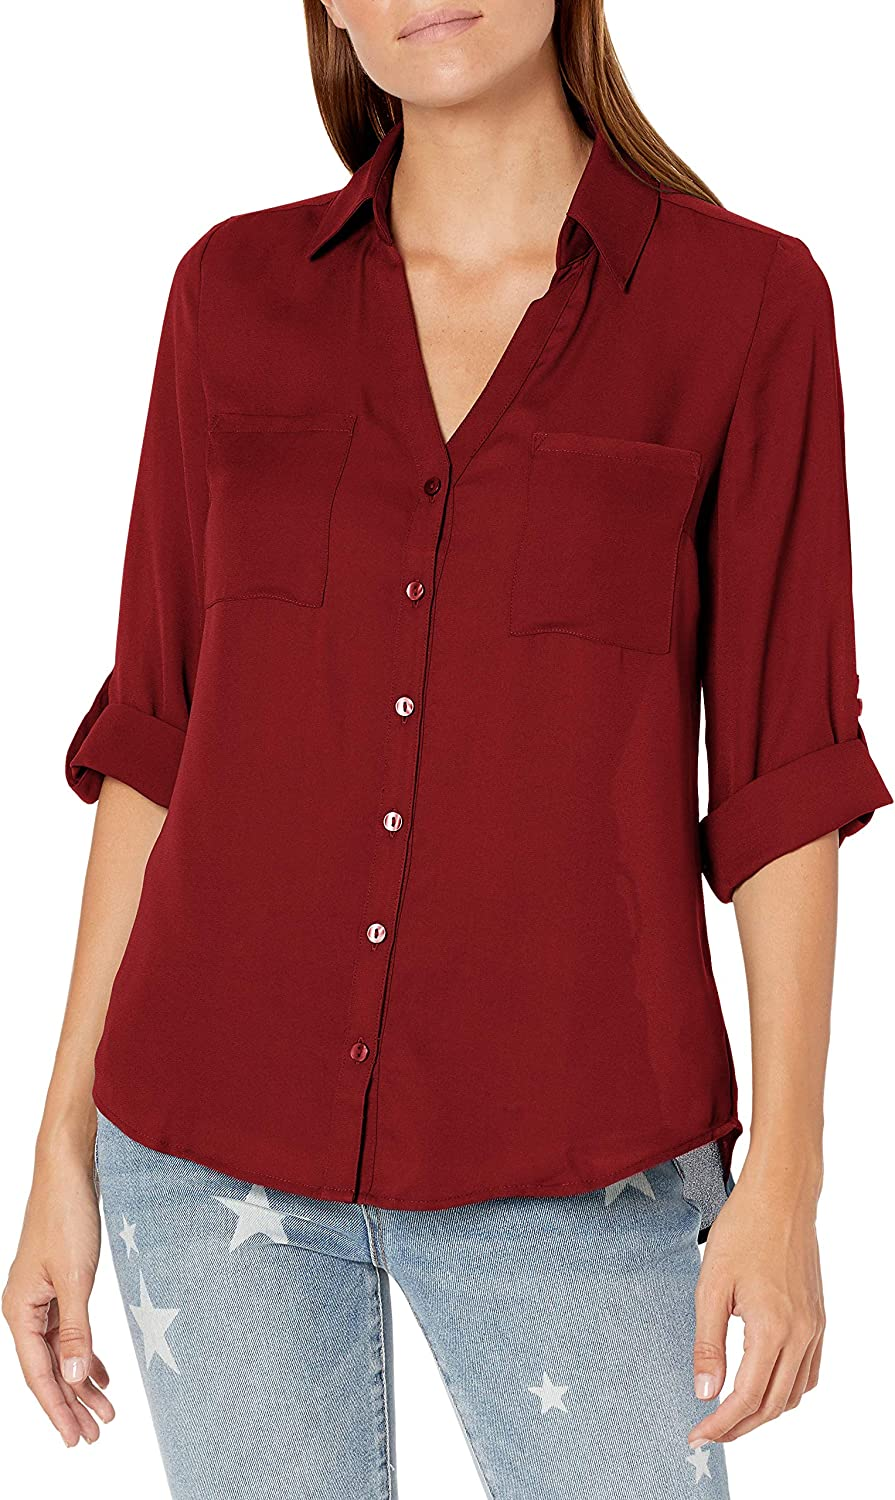 A. Byer Women's Button Down Top with Roll-Tab Sleeves (Junior's)